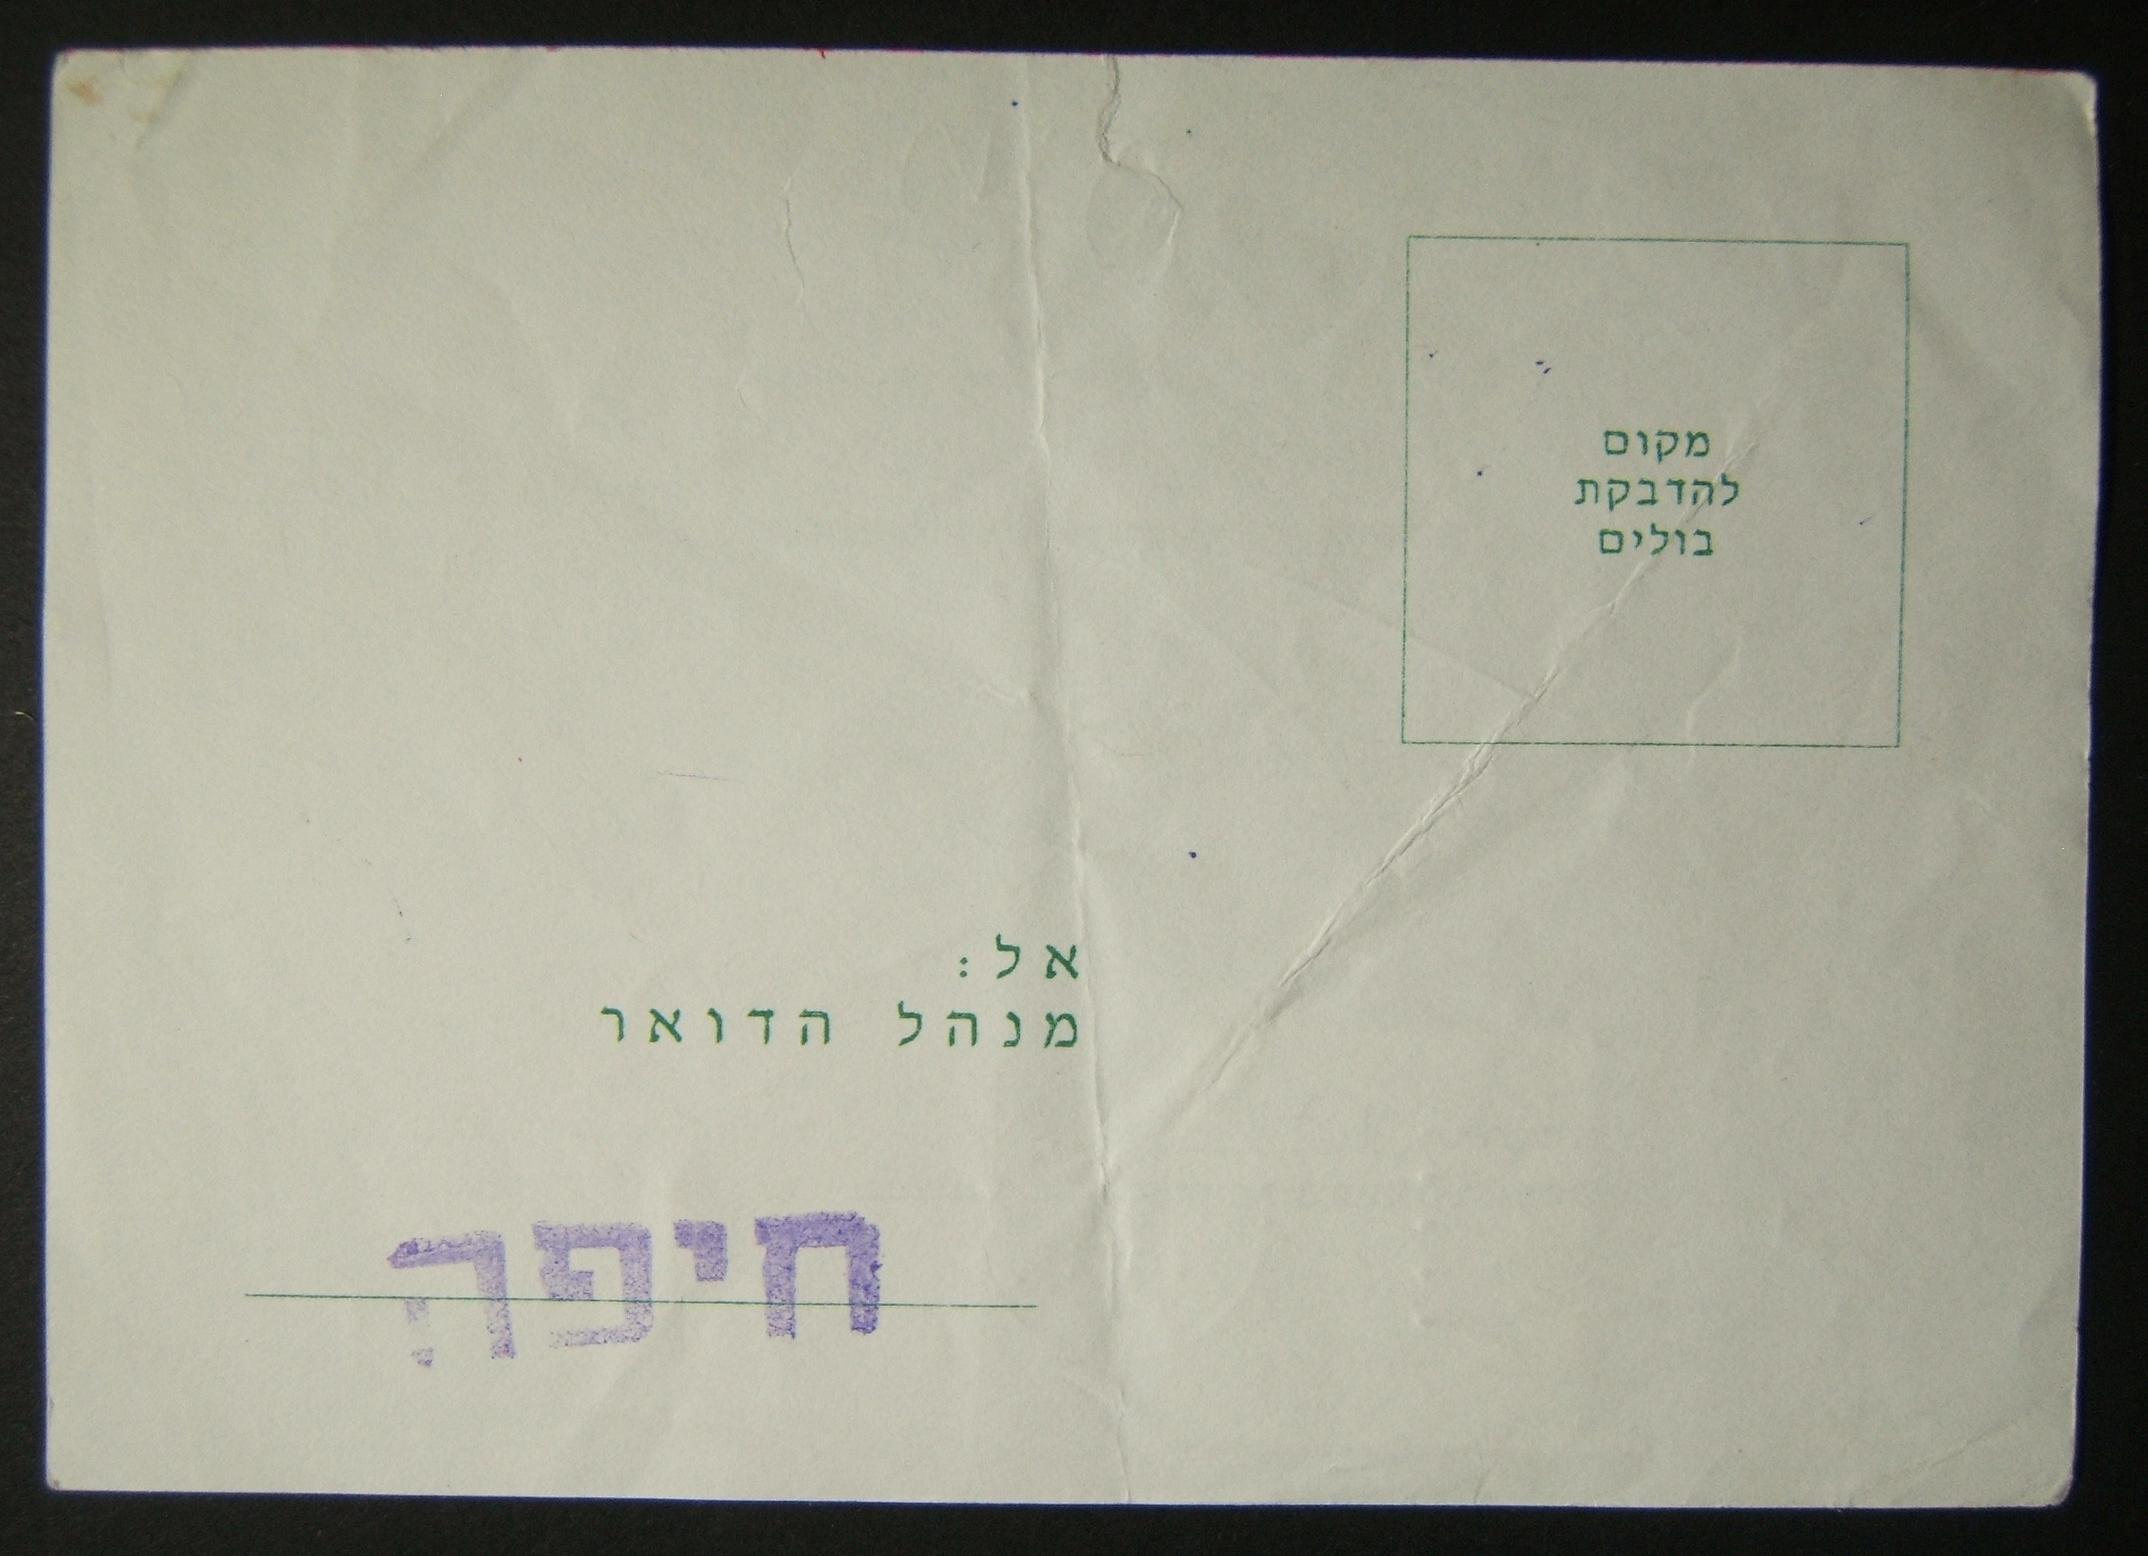 1996 DO-77 rate period franked taxation notice: 14 JUL 1996 HE dated